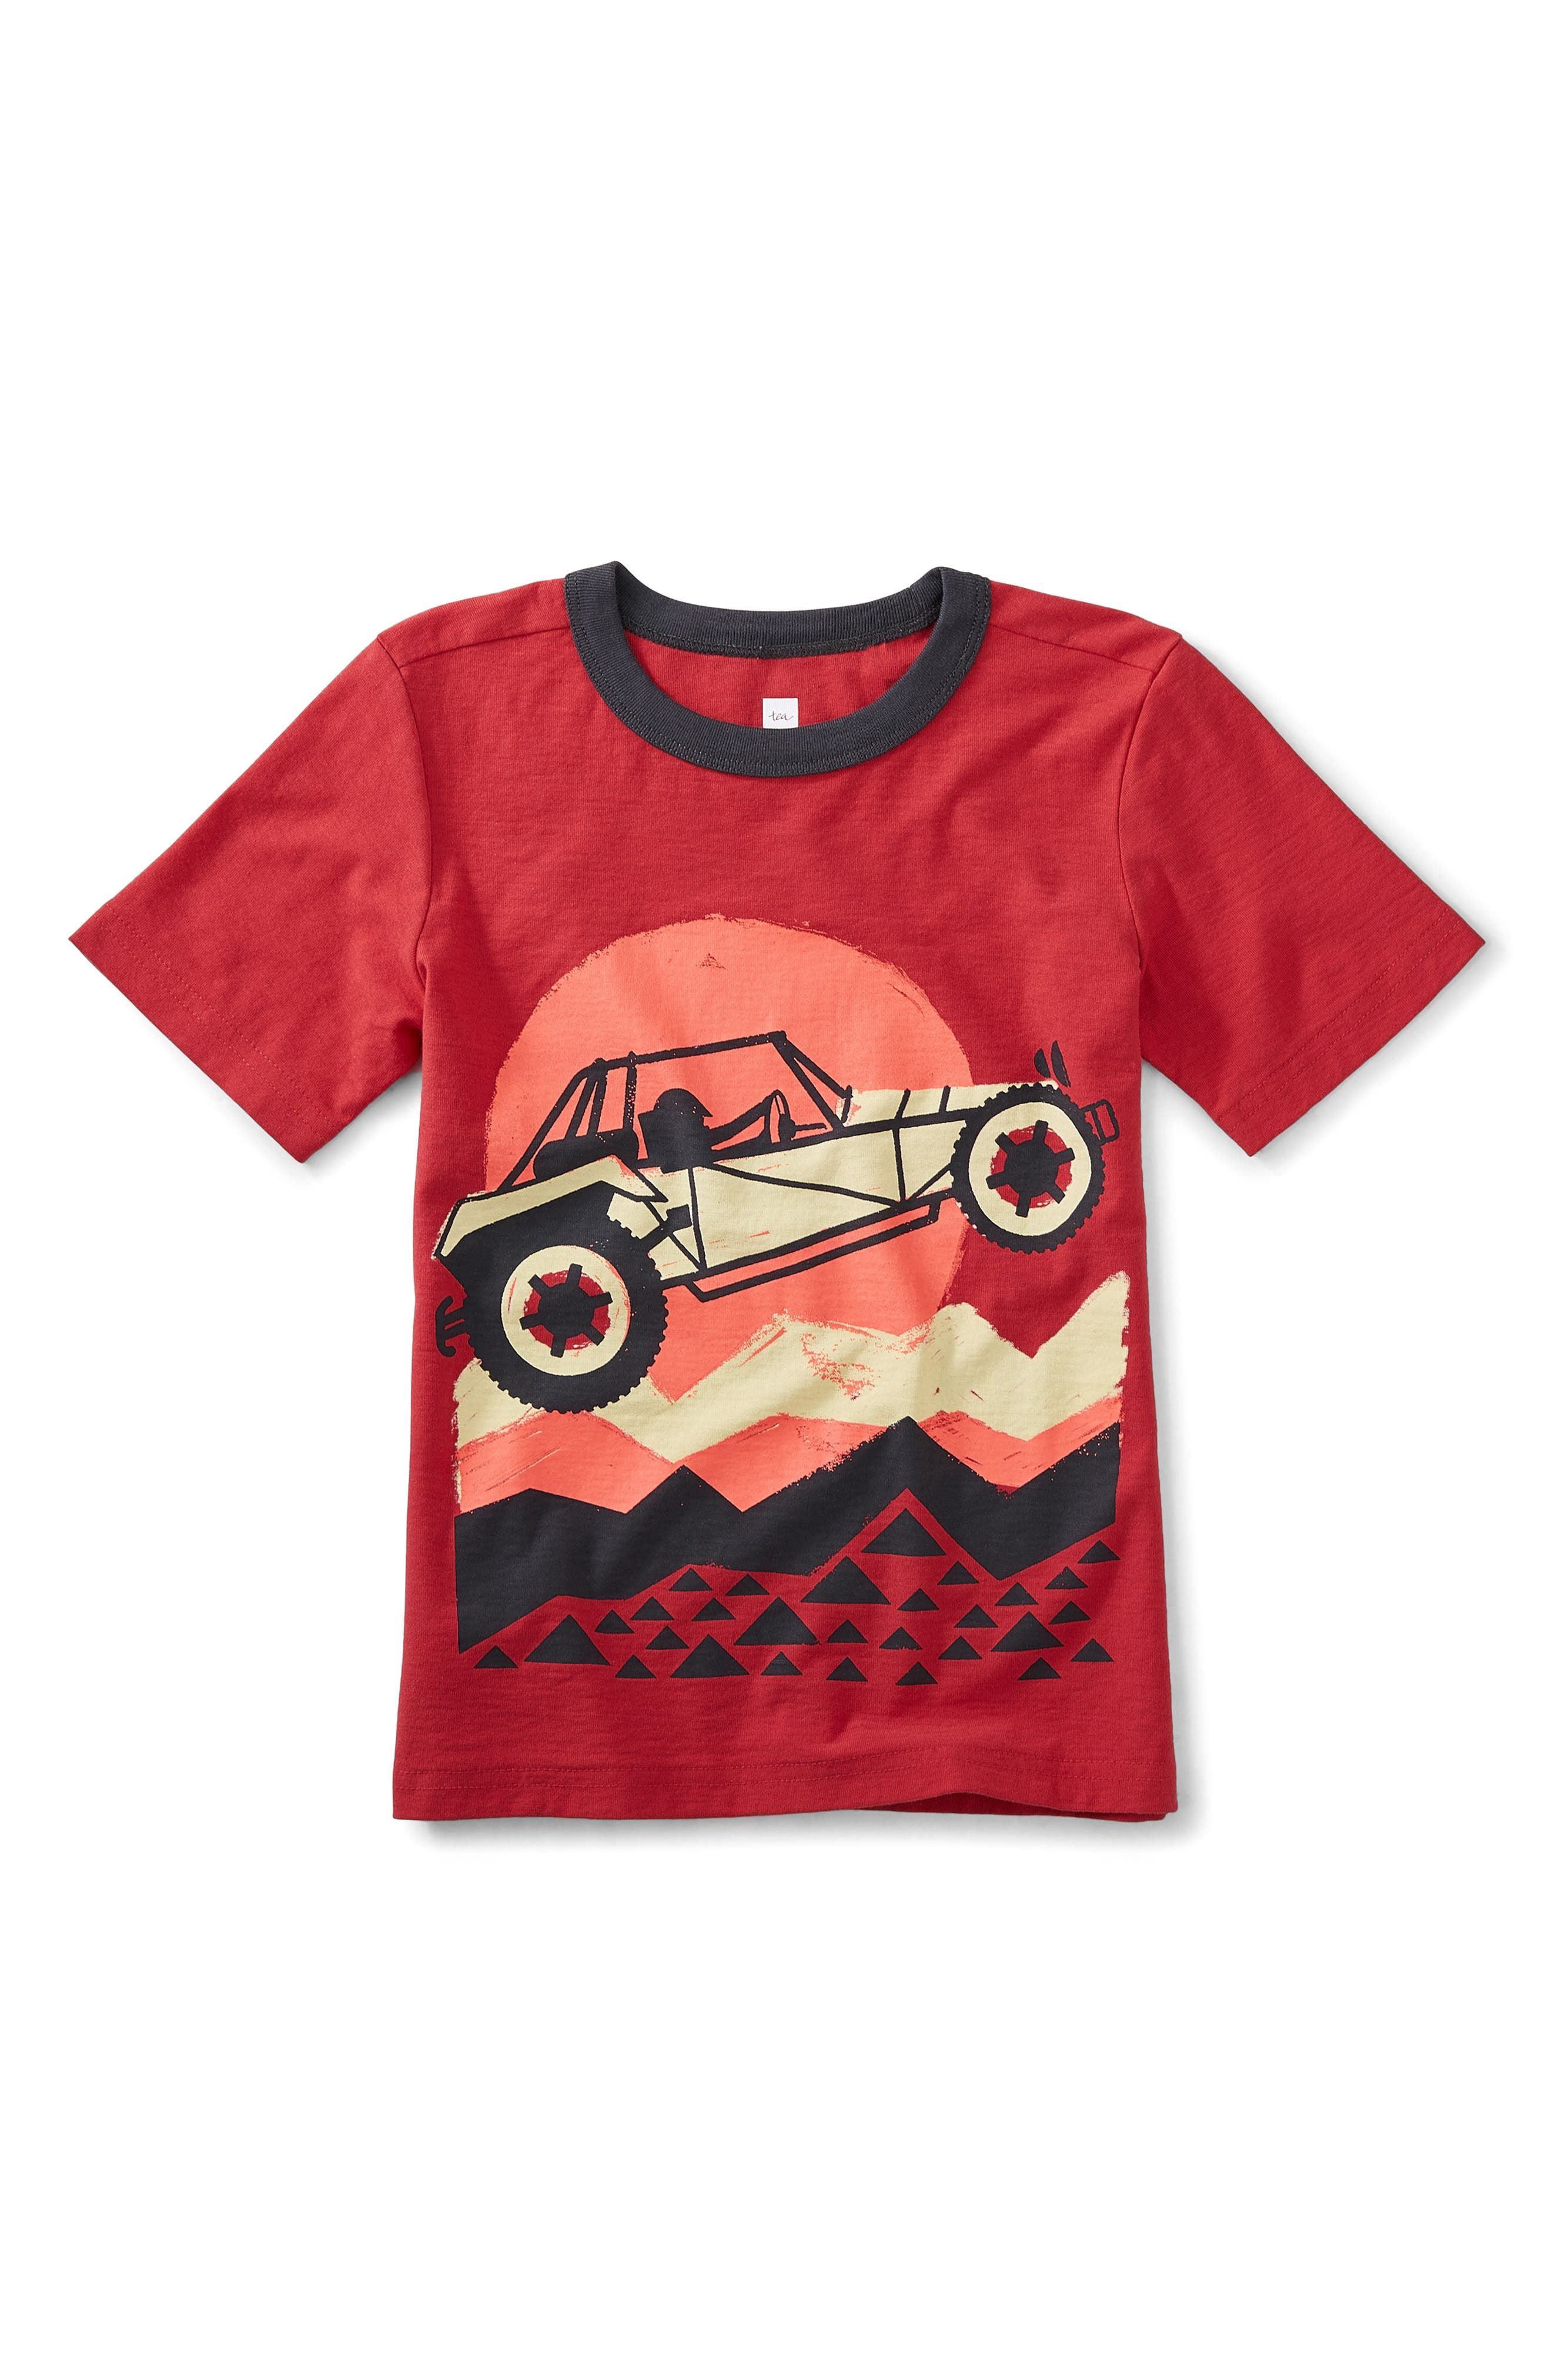 Dune Buggy Graphic T-Shirt,                         Main,                         color, Cayenne